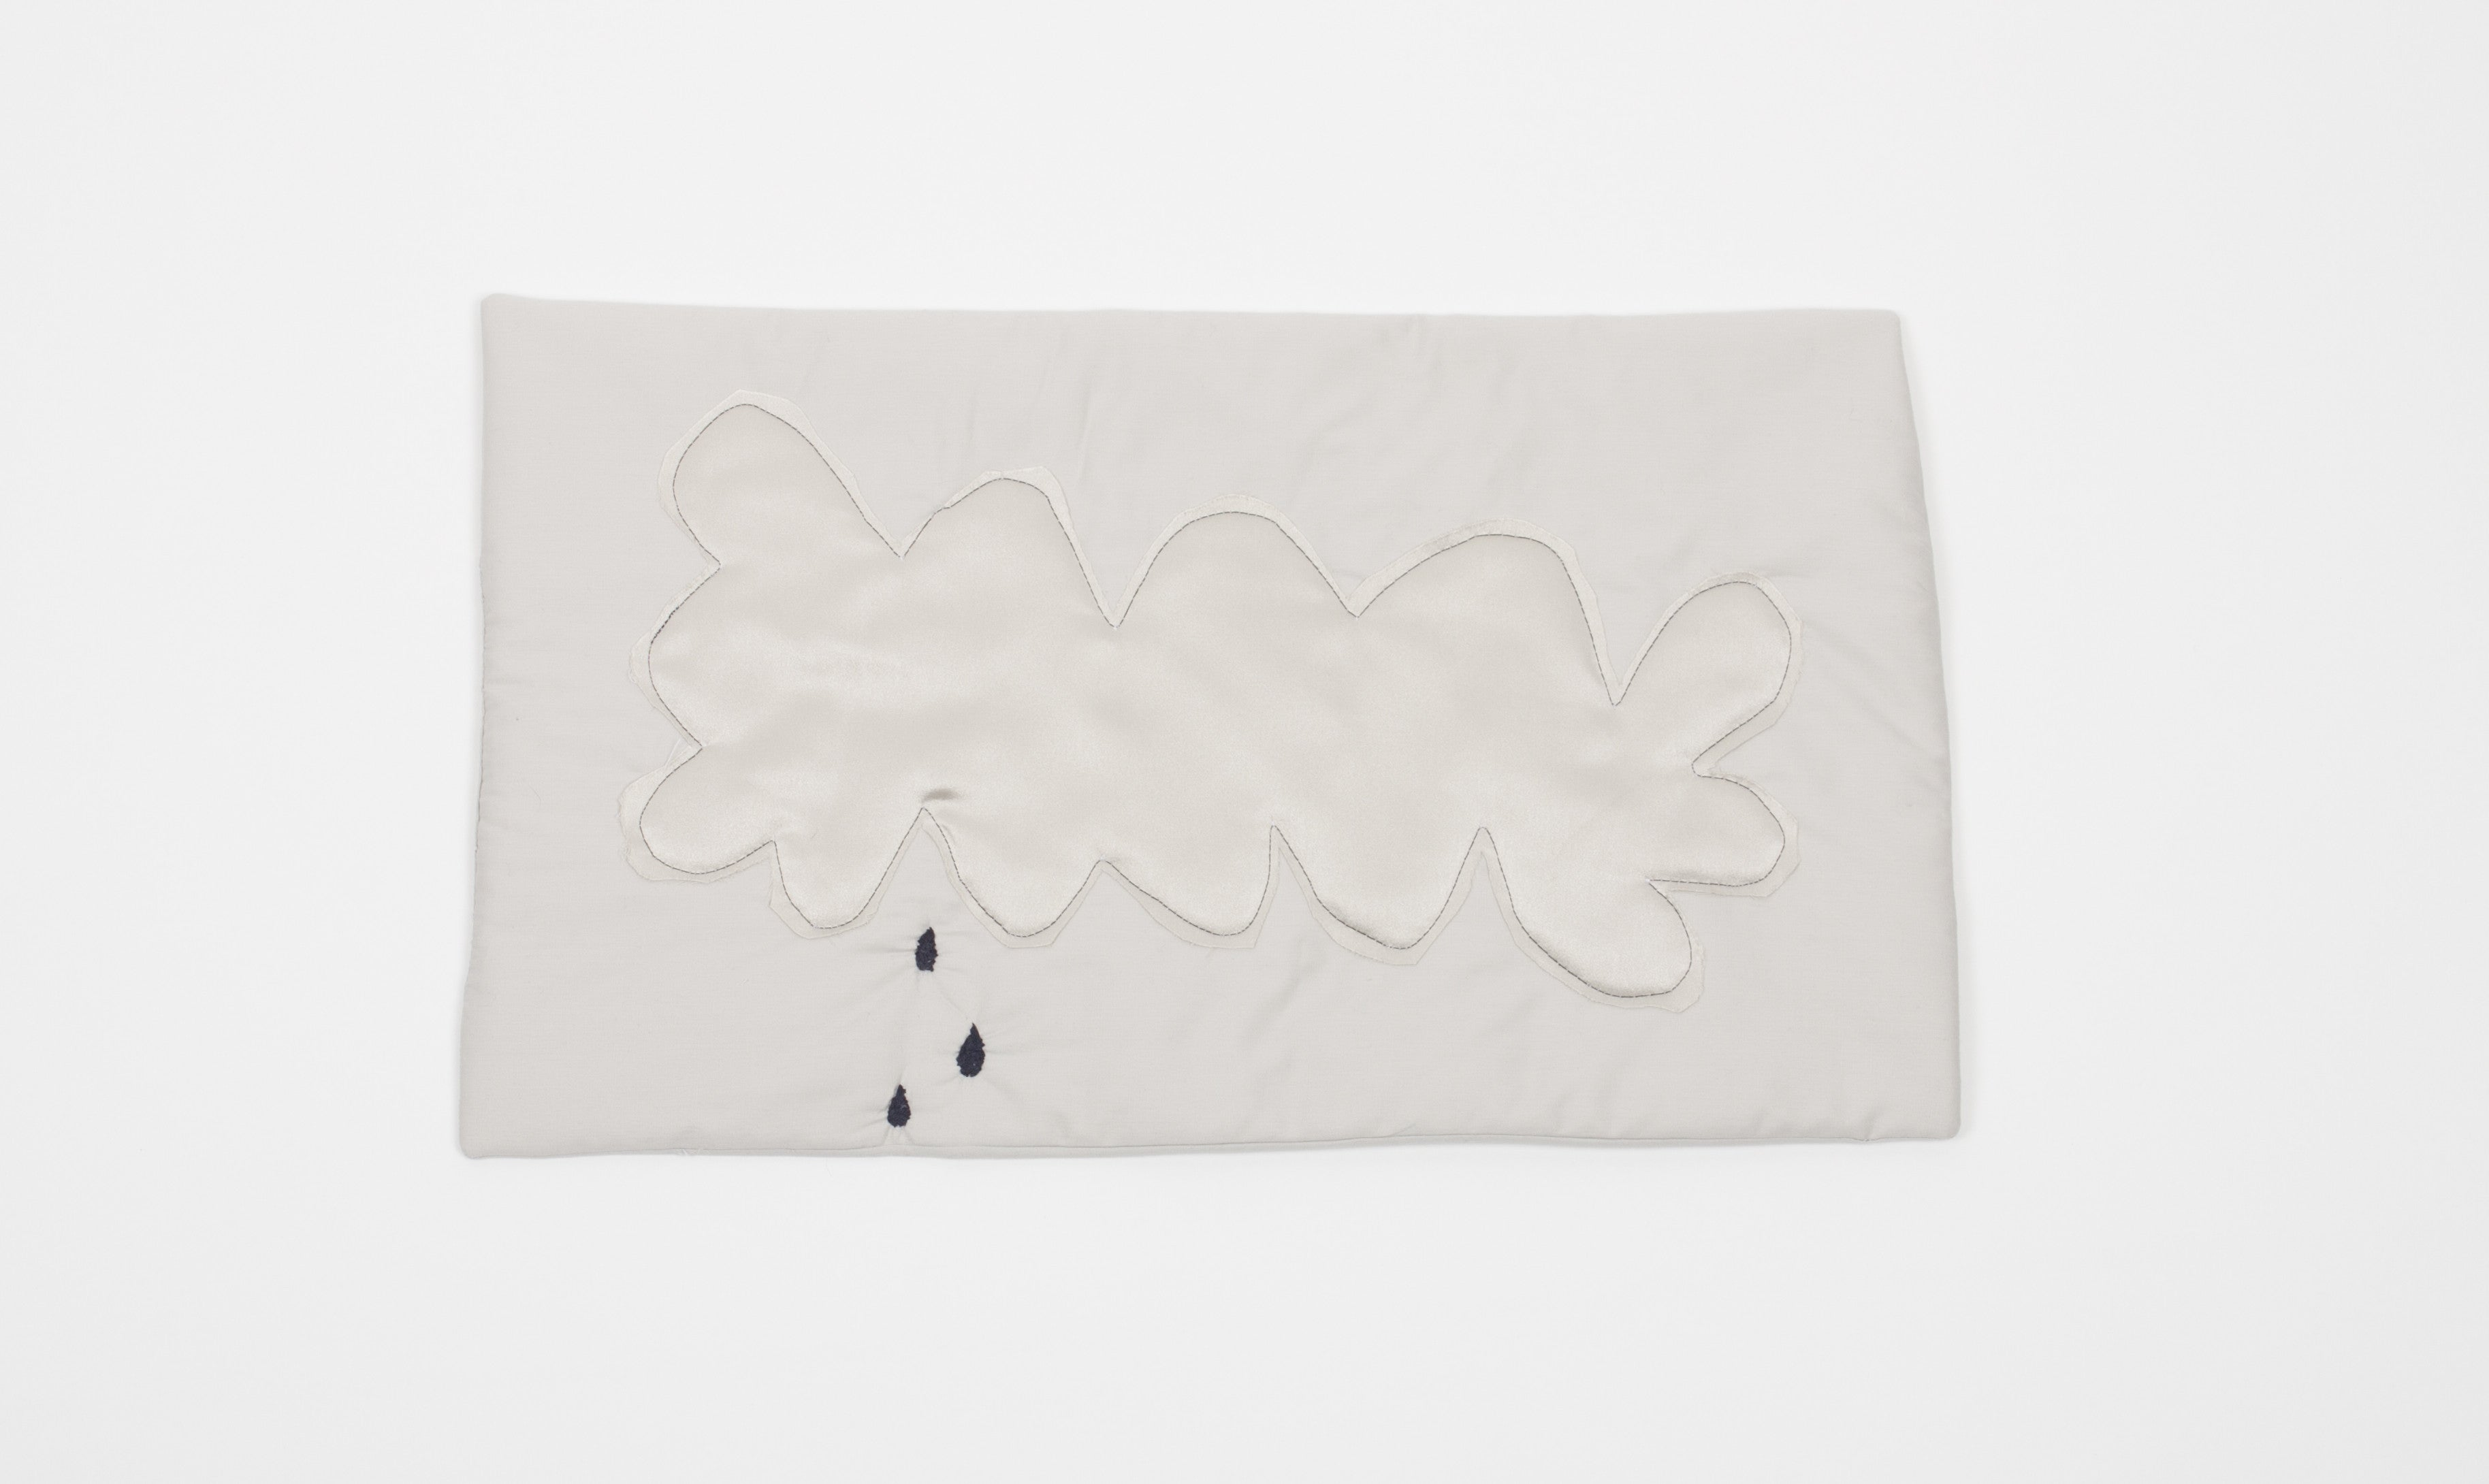 rainy clouds - set of 2